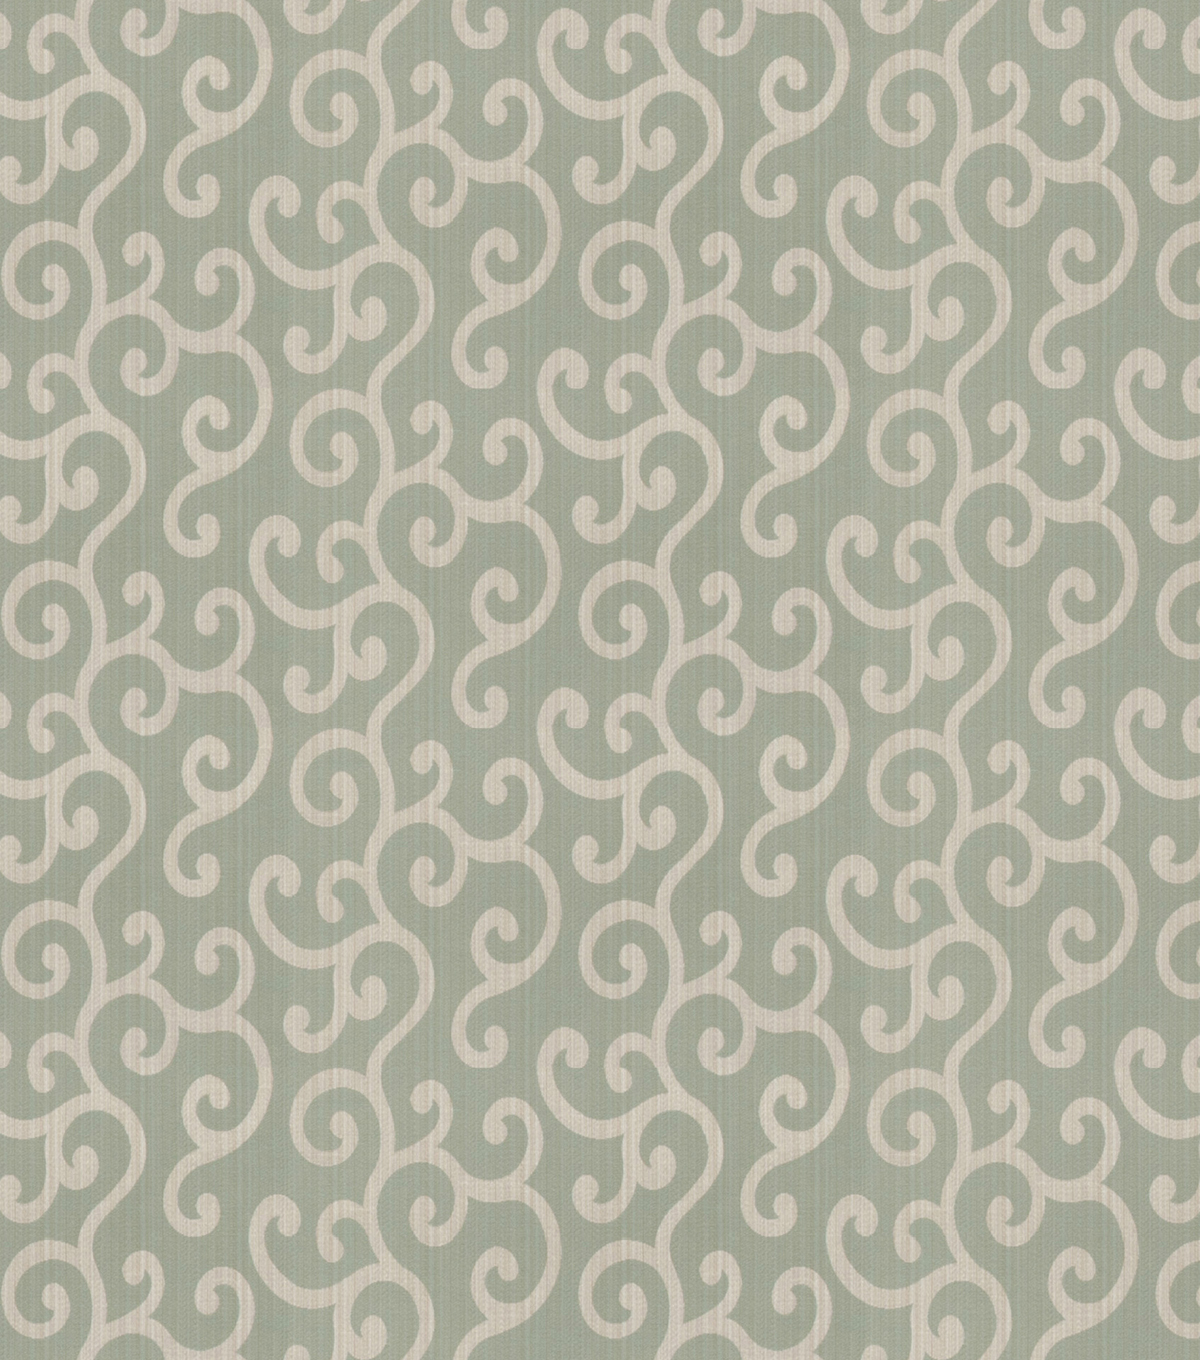 Home Decor 8x8 Fabric Swatch-Eaton Square Assignment Misty Jade